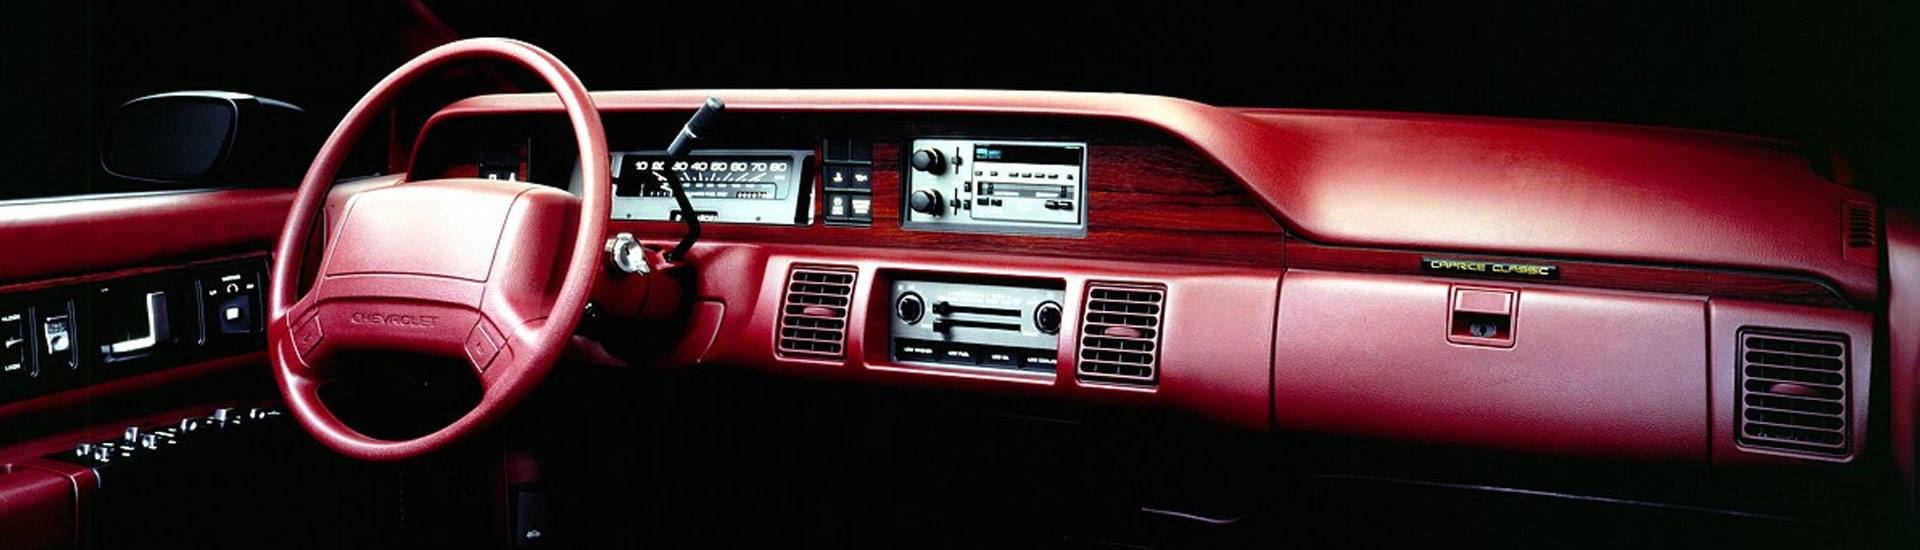 1991 Chevrolet Caprice Dash Kits Custom 1991 Chevrolet